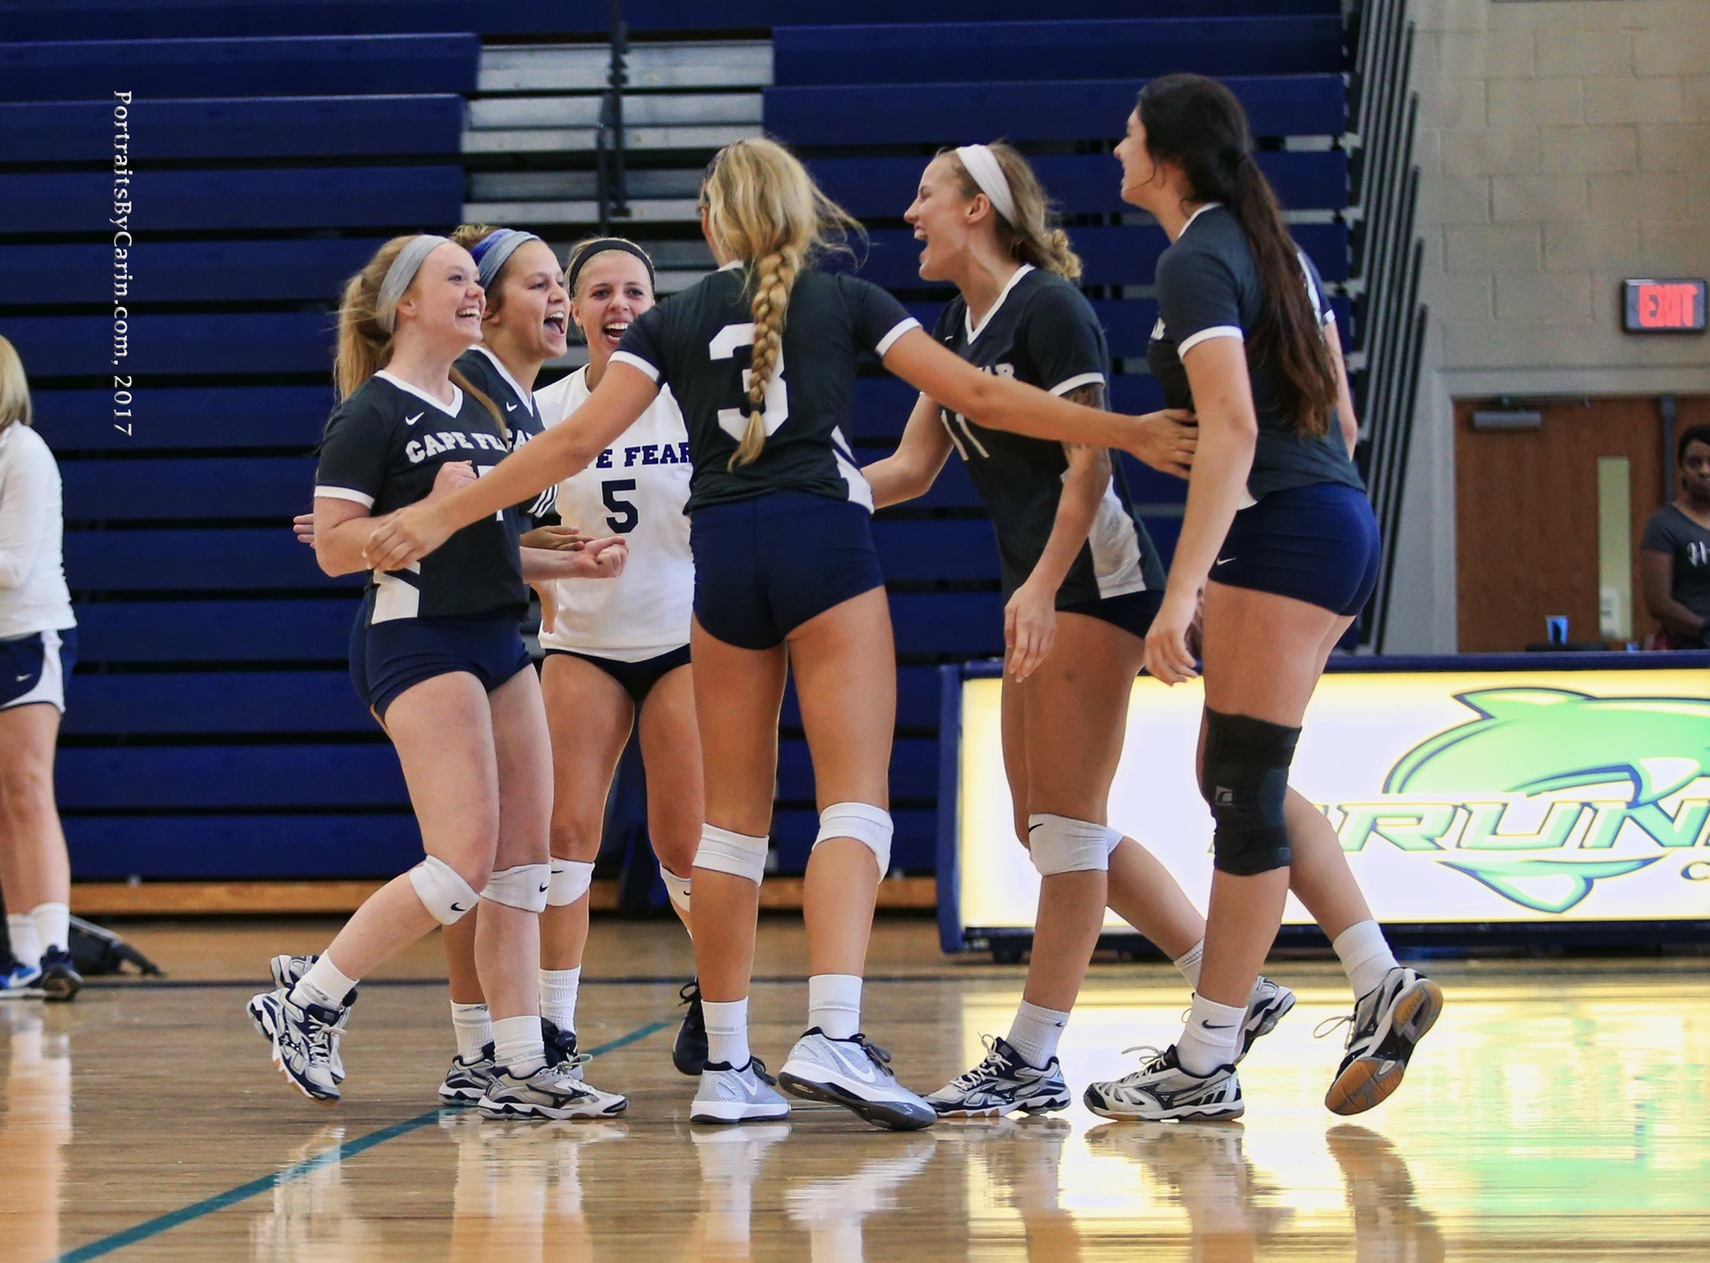 Volleyball Ends Season with 19-6 Record